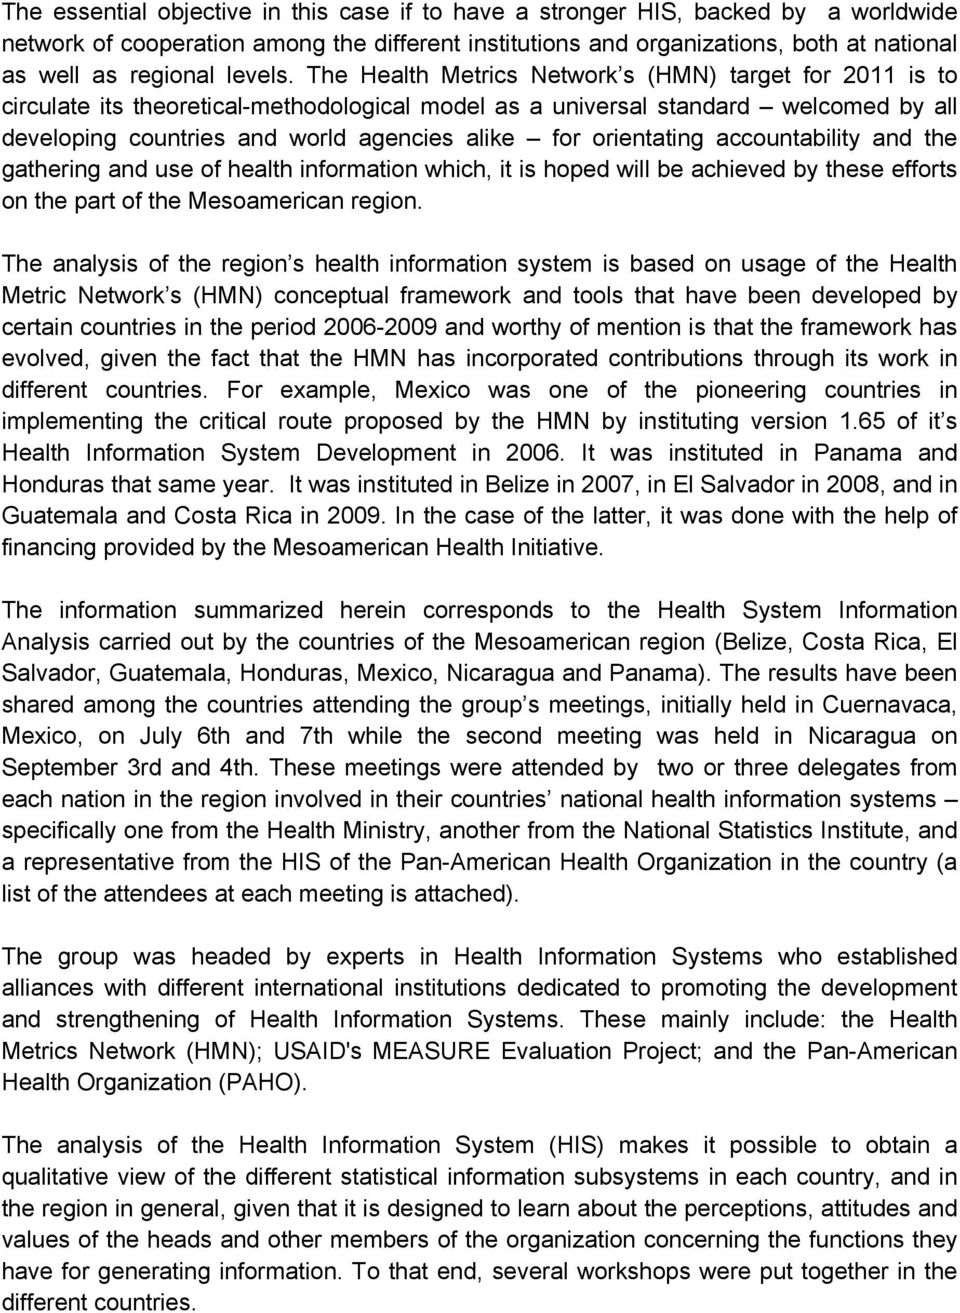 The Health Metrics Network s (HMN) target for 2011 is to circulate its theoretical-methodological model as a universal standard welcomed by all developing countries and world agencies alike for